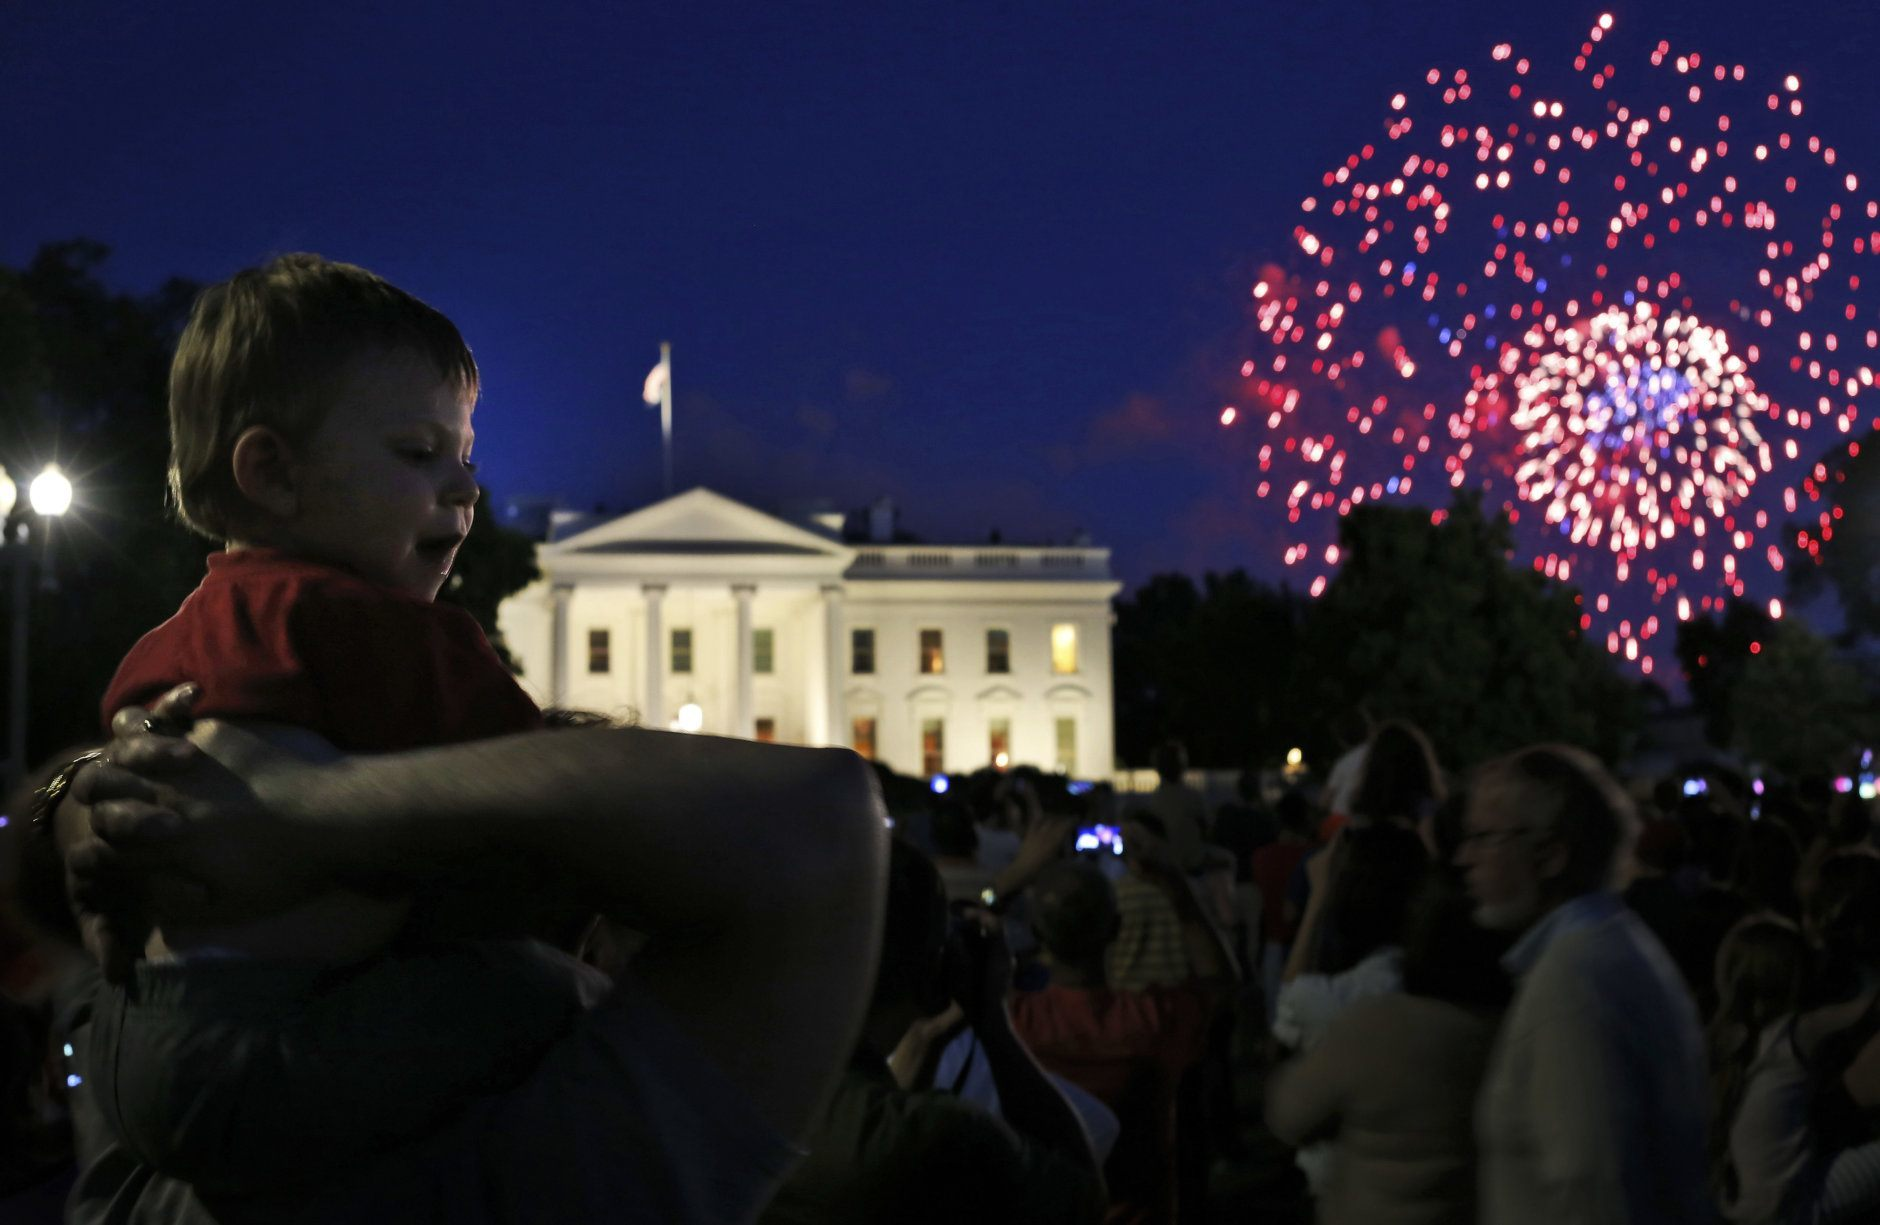 Louis Celli of Montgomery Village, Md., carries his 18-month-old grandson Jayden on his shoulders to watch the fireworks in front of the White House marking Independence Day celebrations in Washington, Friday, July 4, 2014. (AP Photo/Charles Dharapak)